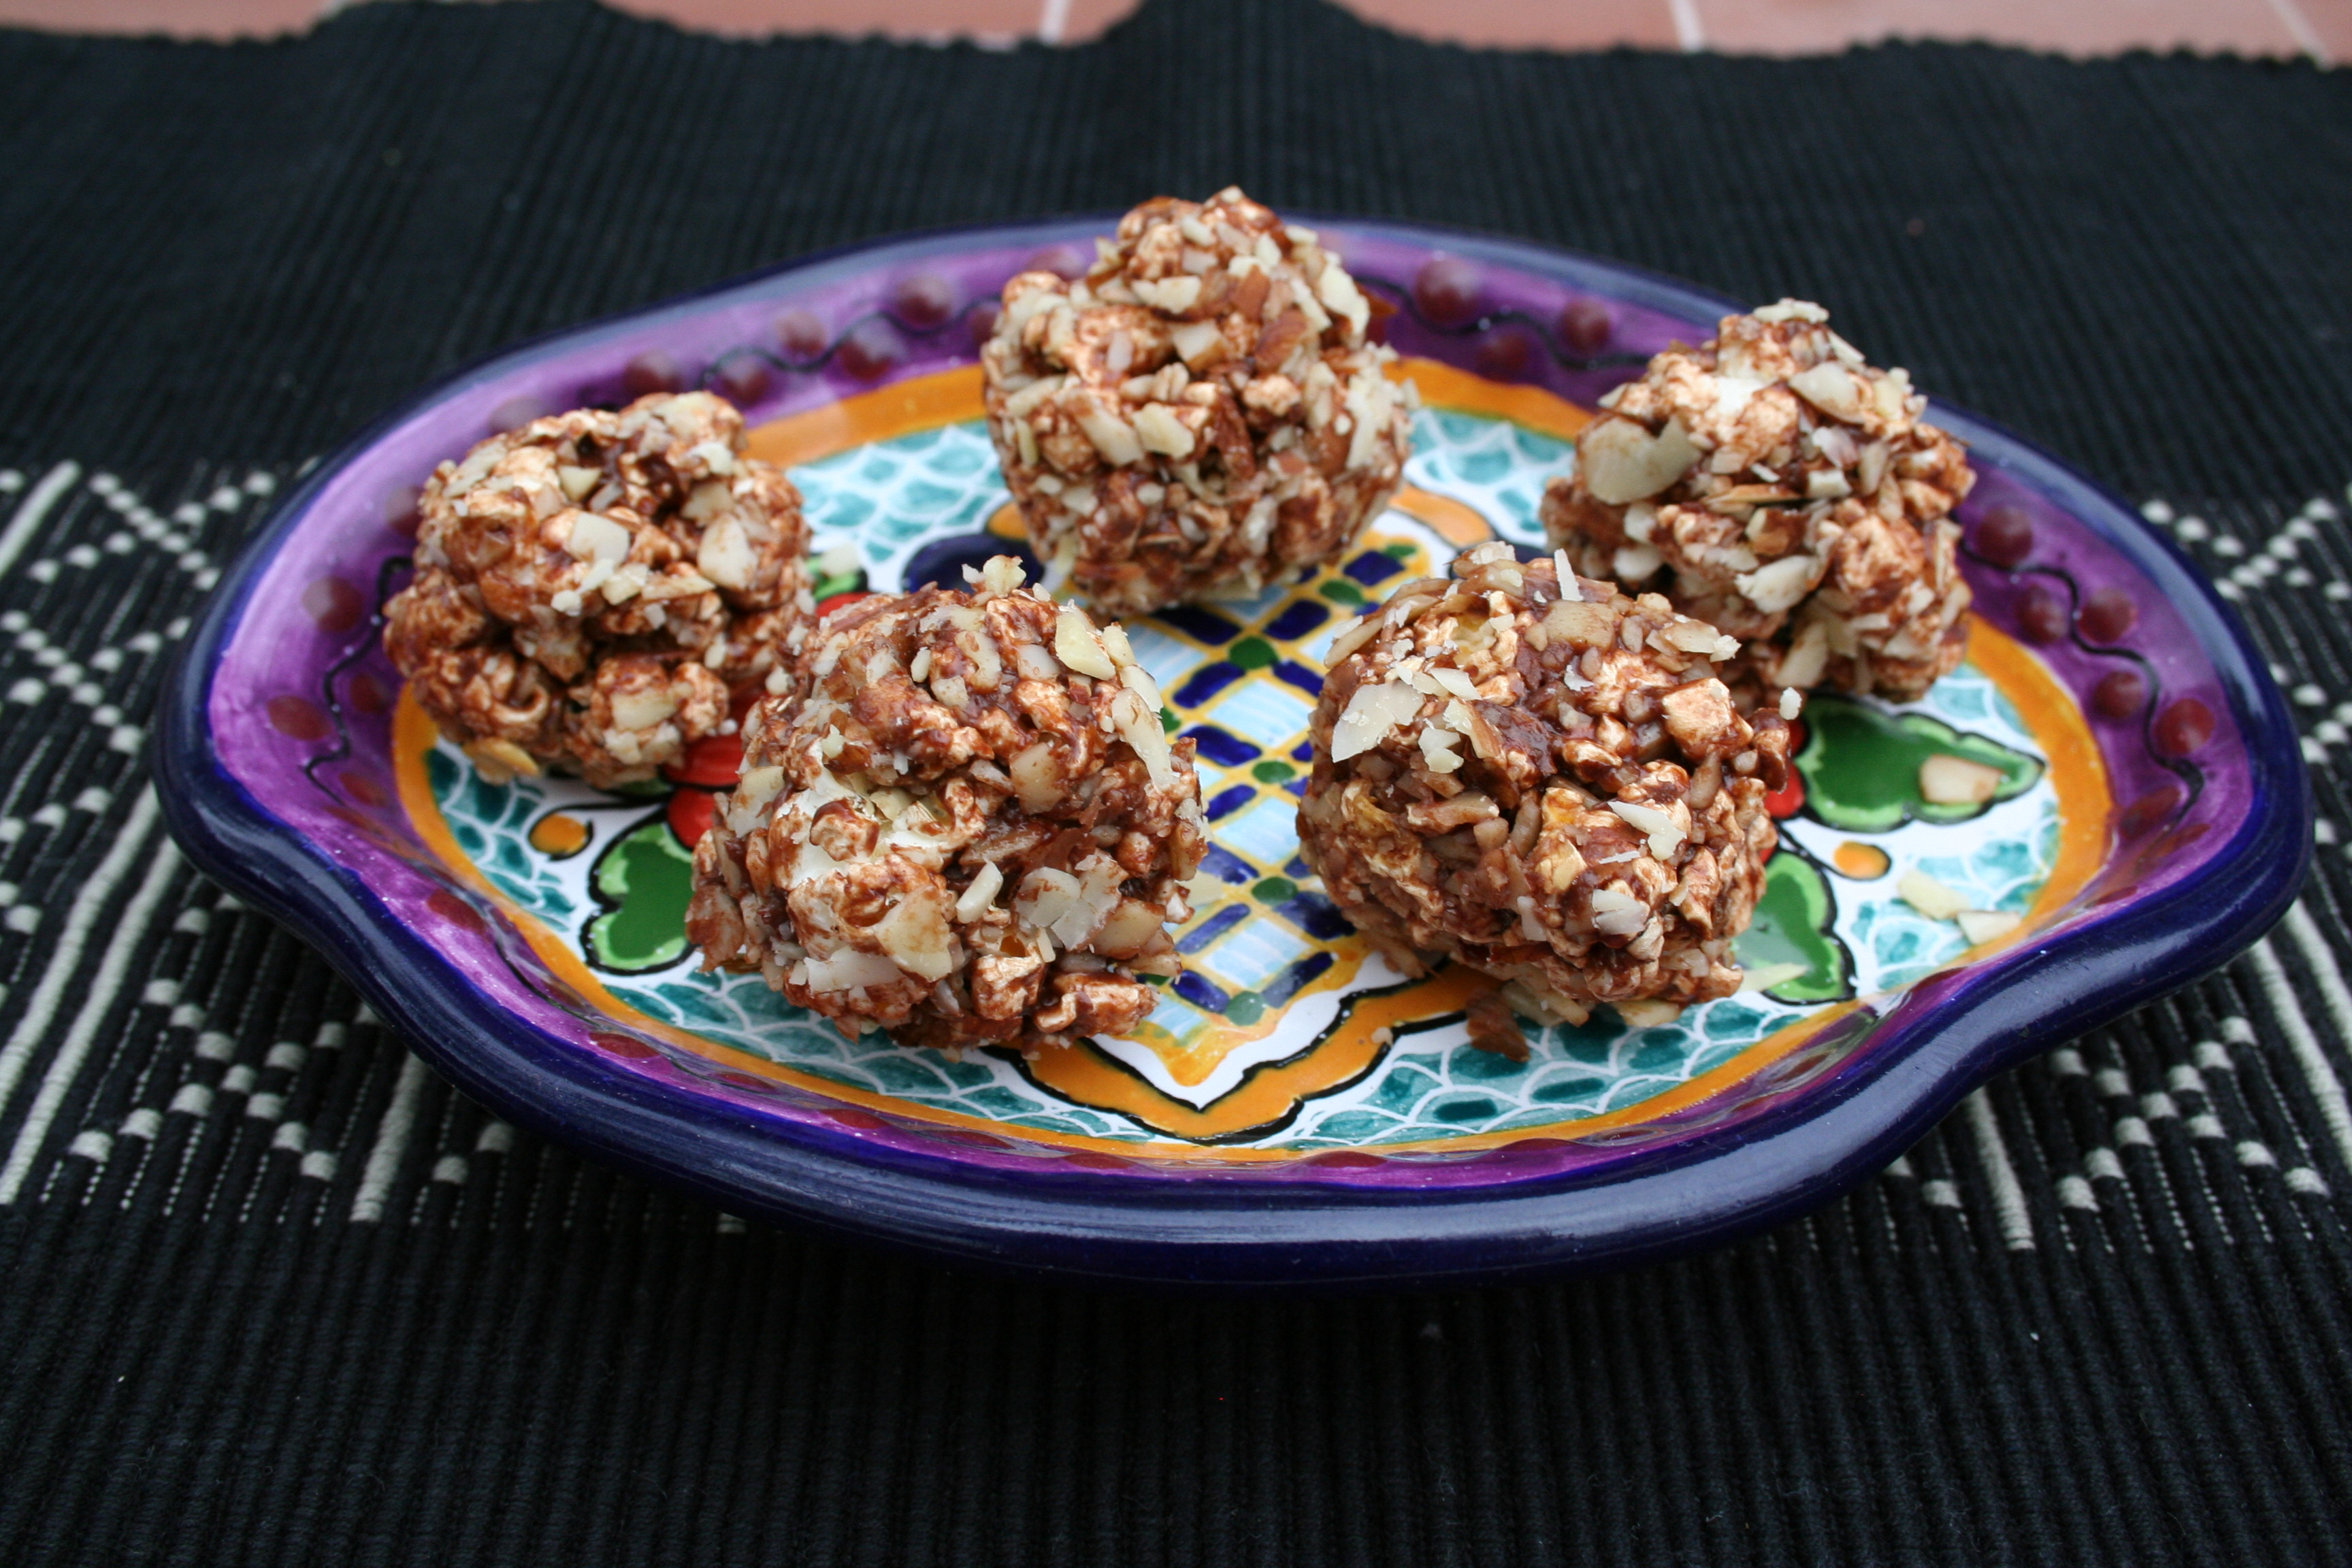 Sweet Treats with Chocolate - Popcorn Balls with Chocolate and Almonds